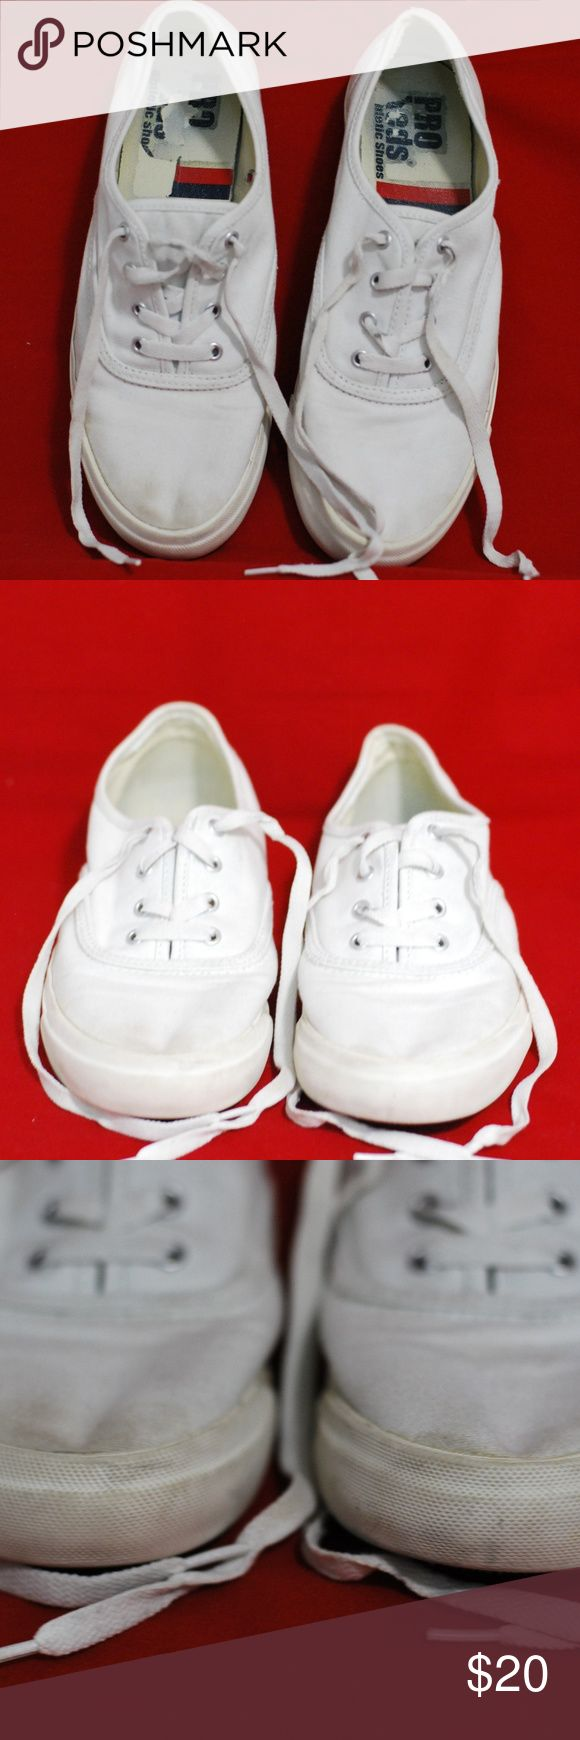 "Pro Keds Shoes Pro Keds Womens Athletic Shoes size 9 color white with laces Tennis  Measurements: Outsole Length: approx. 10 3/4""  Condition: Excellent  Questions are welcome! Fast Shipping from a smoke-free pet free home. keds Shoes Athletic Shoes"